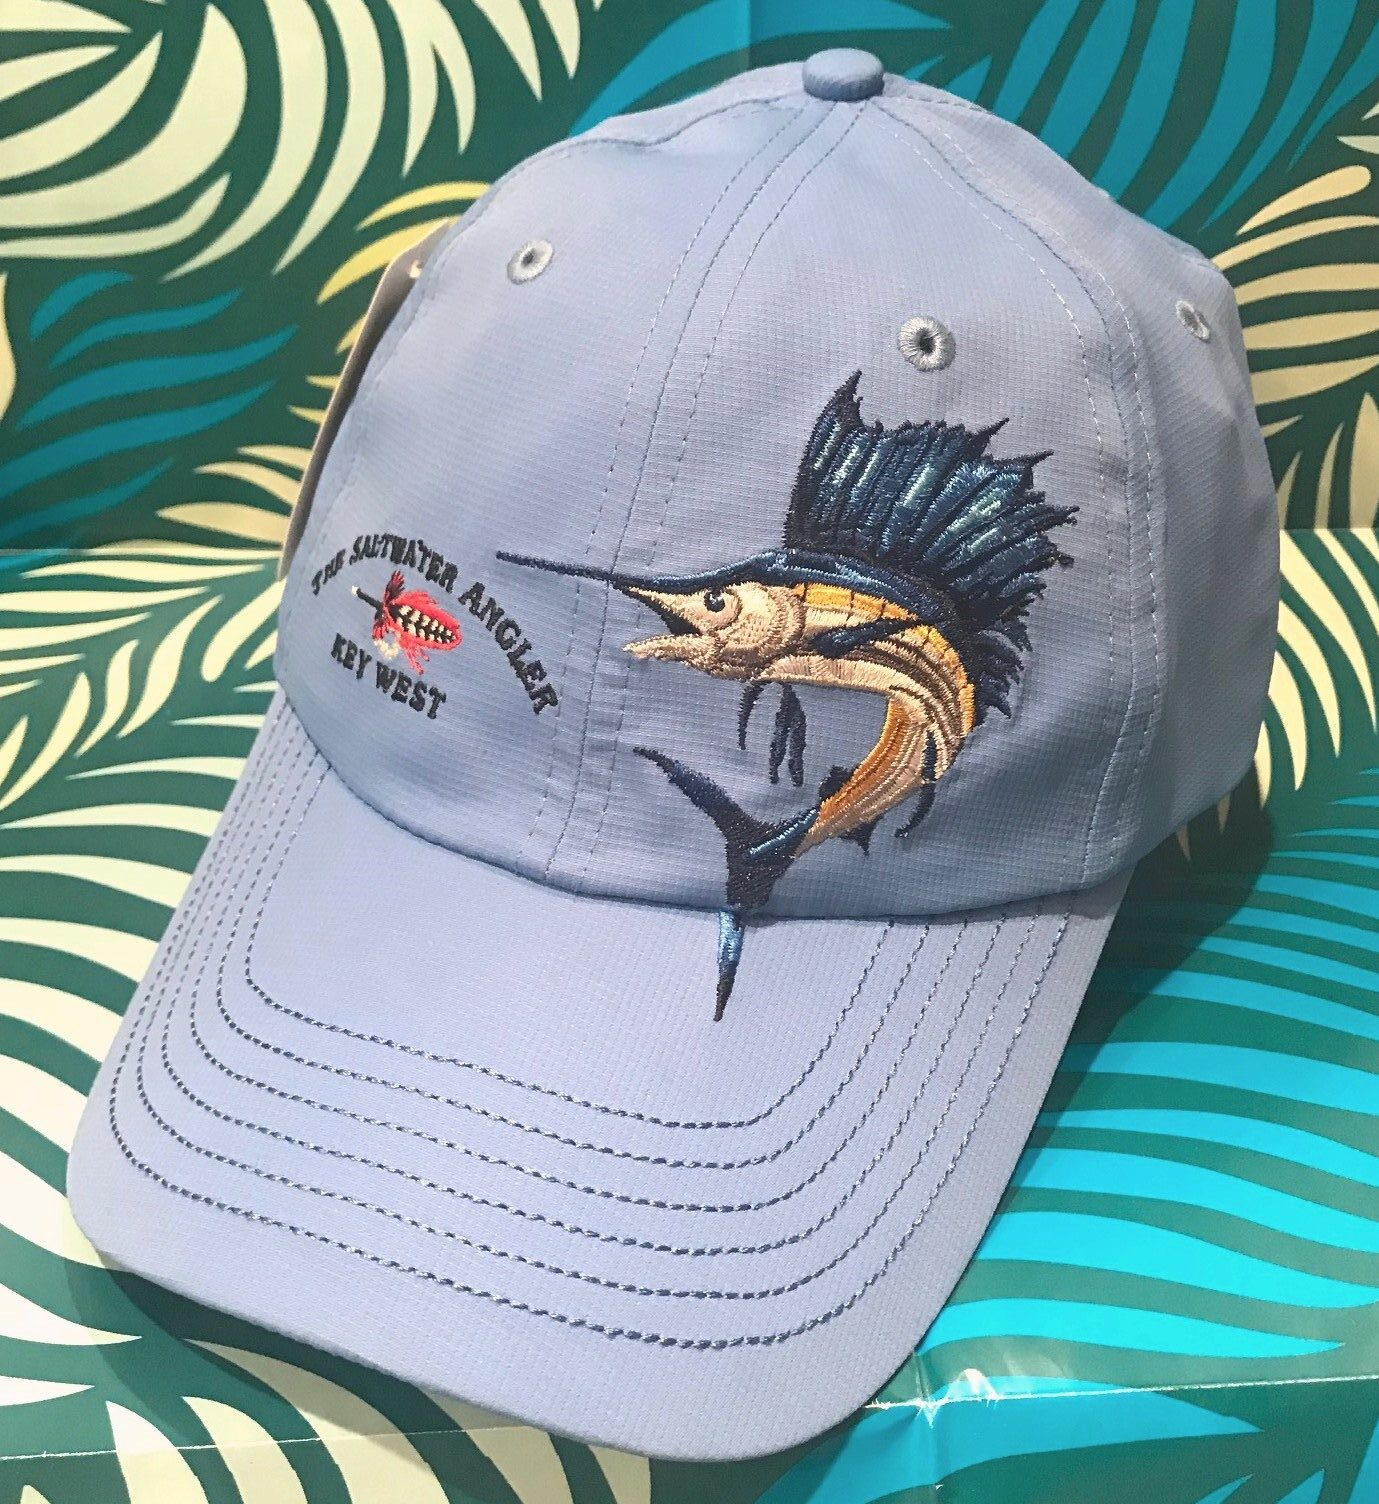 saltwater angler performance cap